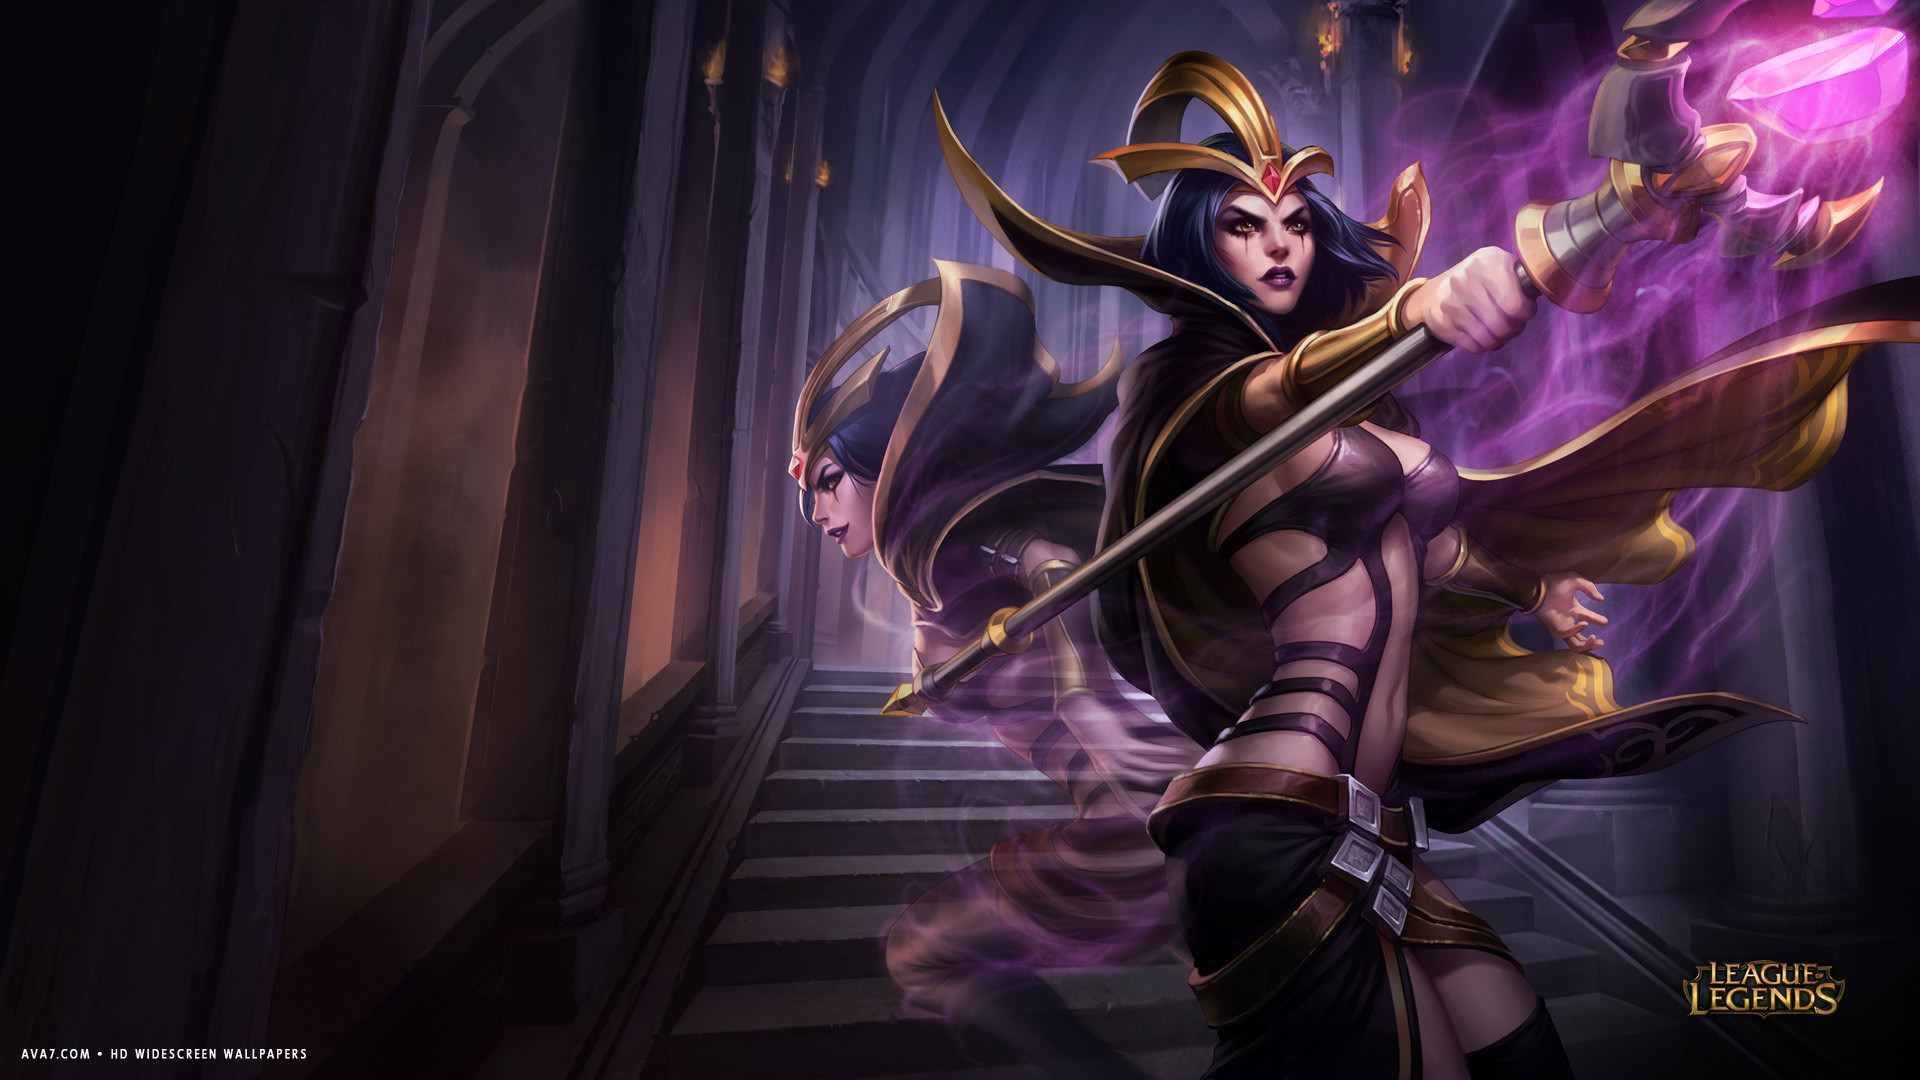 league of legends game lol leblanc magic ghost hd widescreen wallpaper